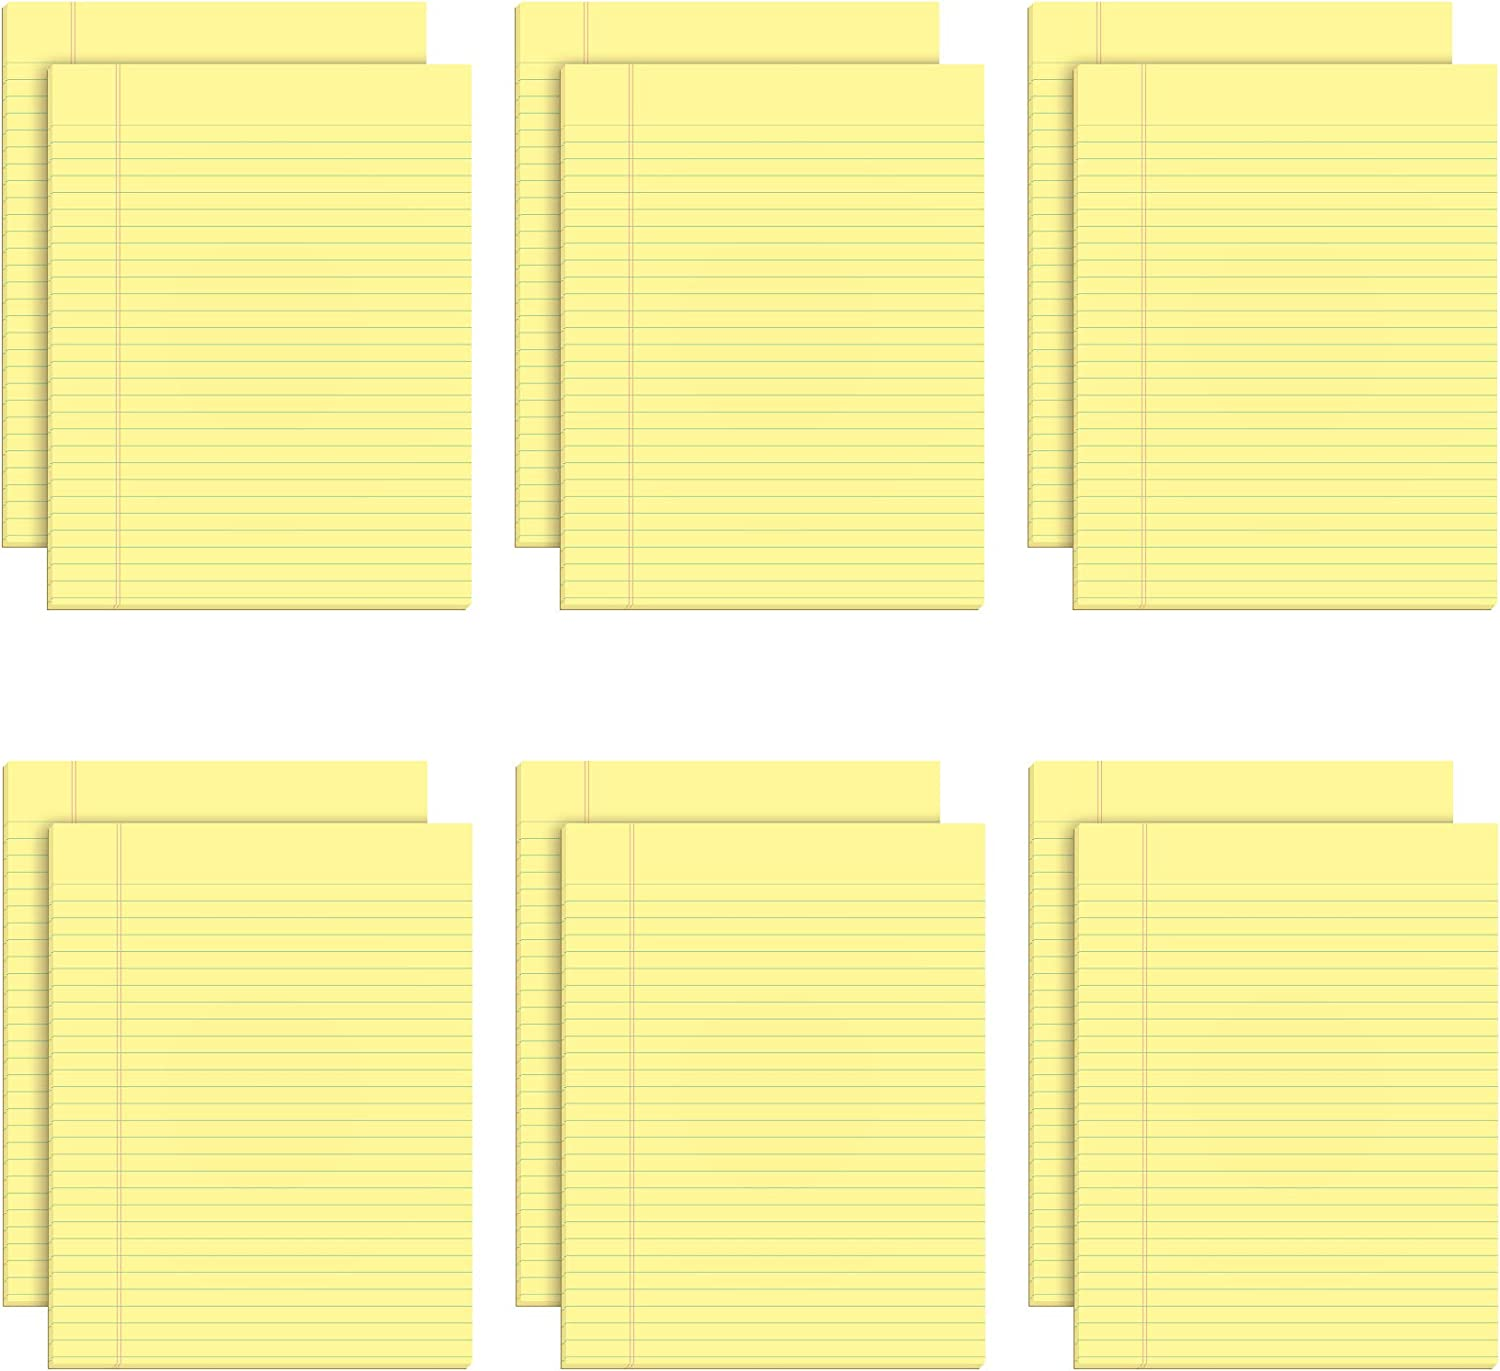 TOPS 36 The Legal Pad Glue Top Pads, Legal/Wide, 36 36/36 x 3636, Canary, 36  Sheets (Pack of 3636)